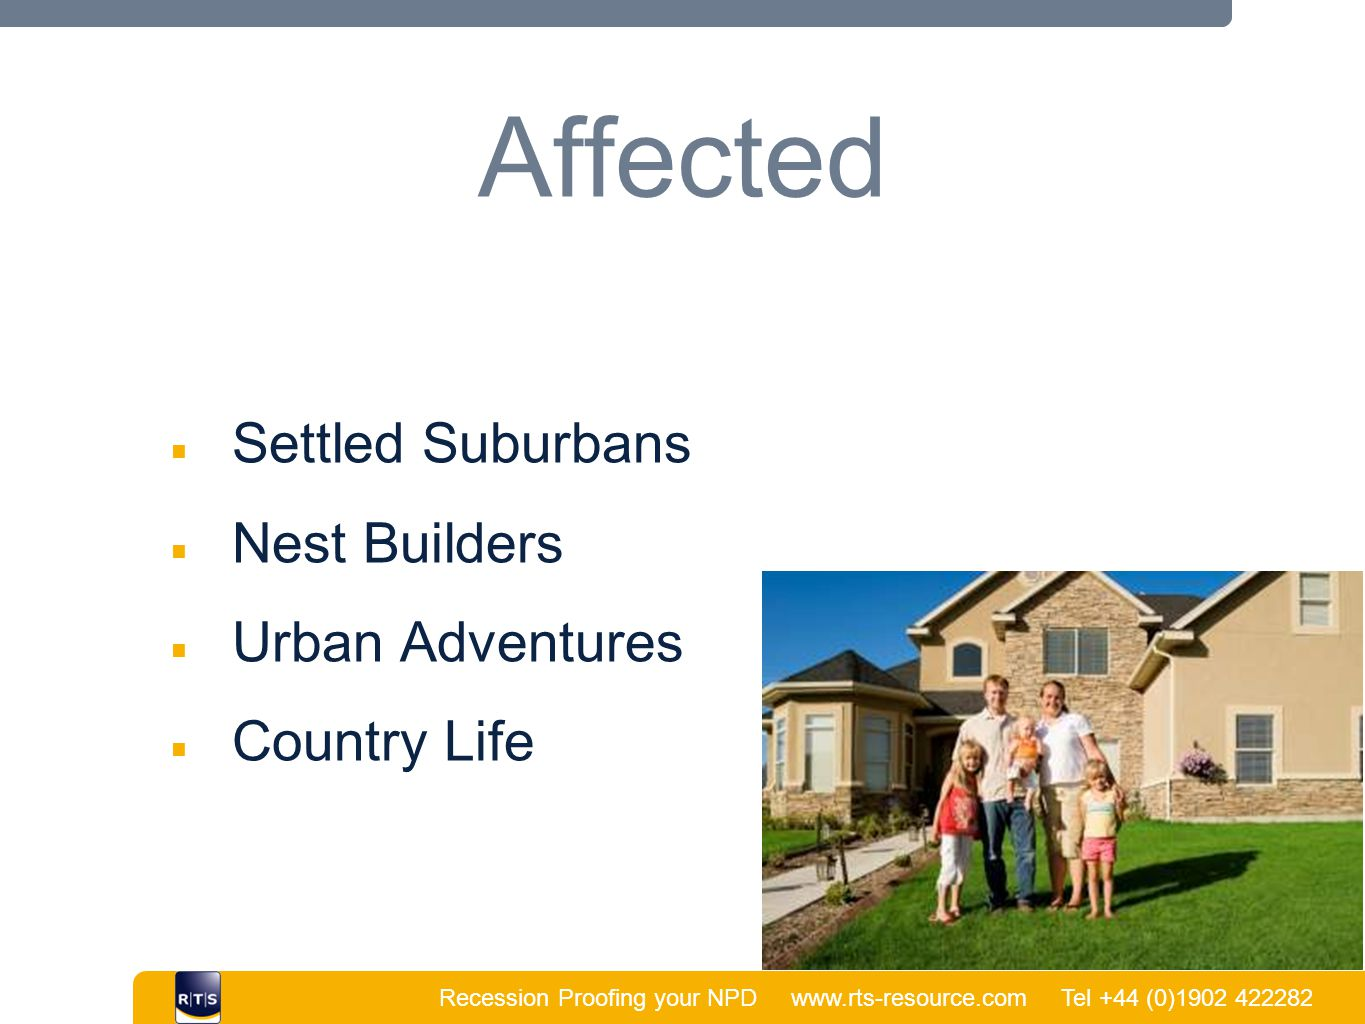 Recession Proofing your NPD www.rts-resource.com Tel +44 (0)1902 422282 | Affected ■ Settled Suburbans ■ Nest Builders ■ Urban Adventures ■ Country Life